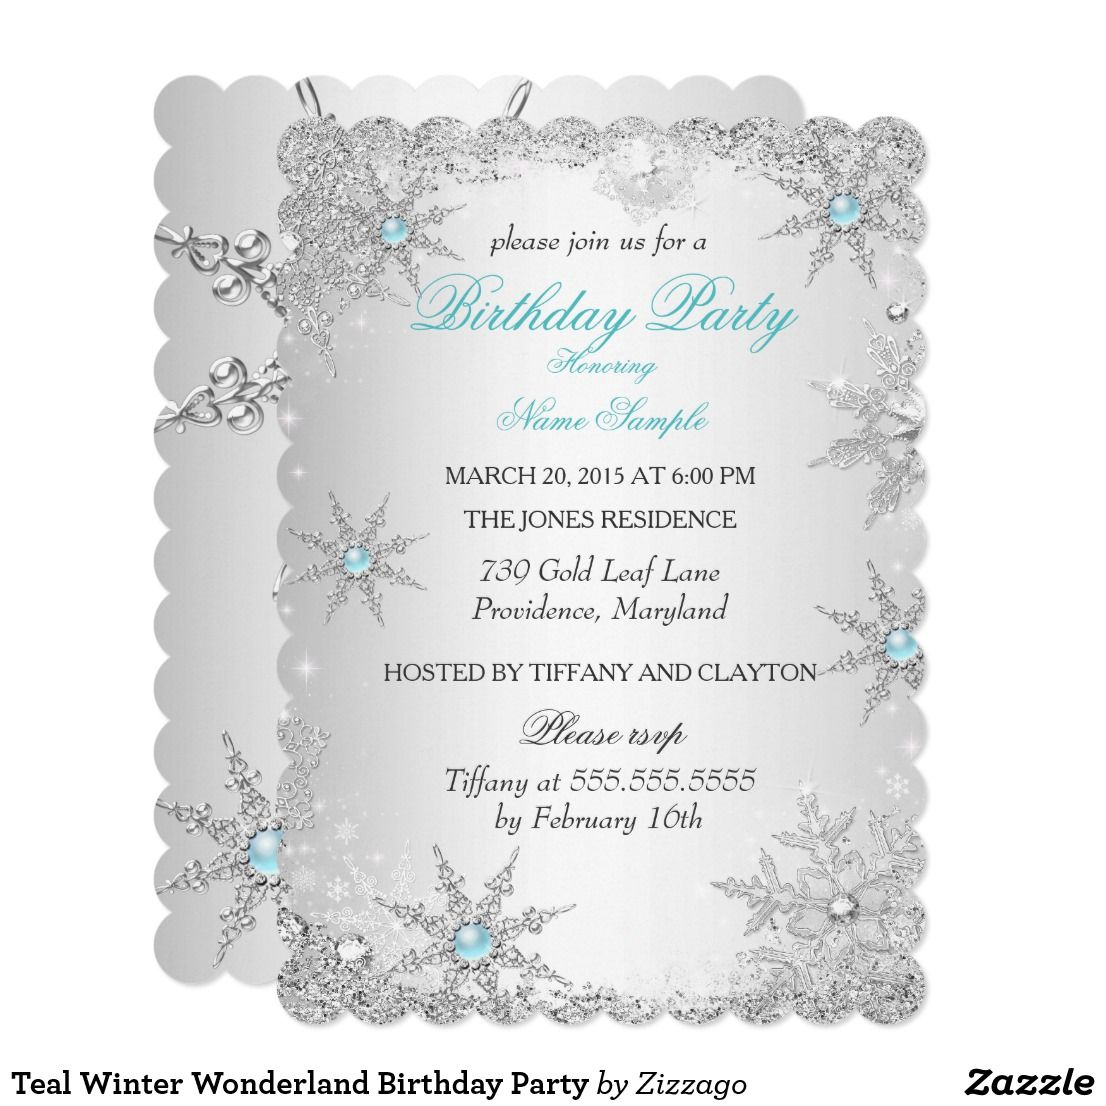 Teal winter wonderland birthday party invitation happy birthday teal winter wonderland birthday party card teal blue birthday party invitation silver sparkle pearl jewel snowflake design customize with your own details filmwisefo